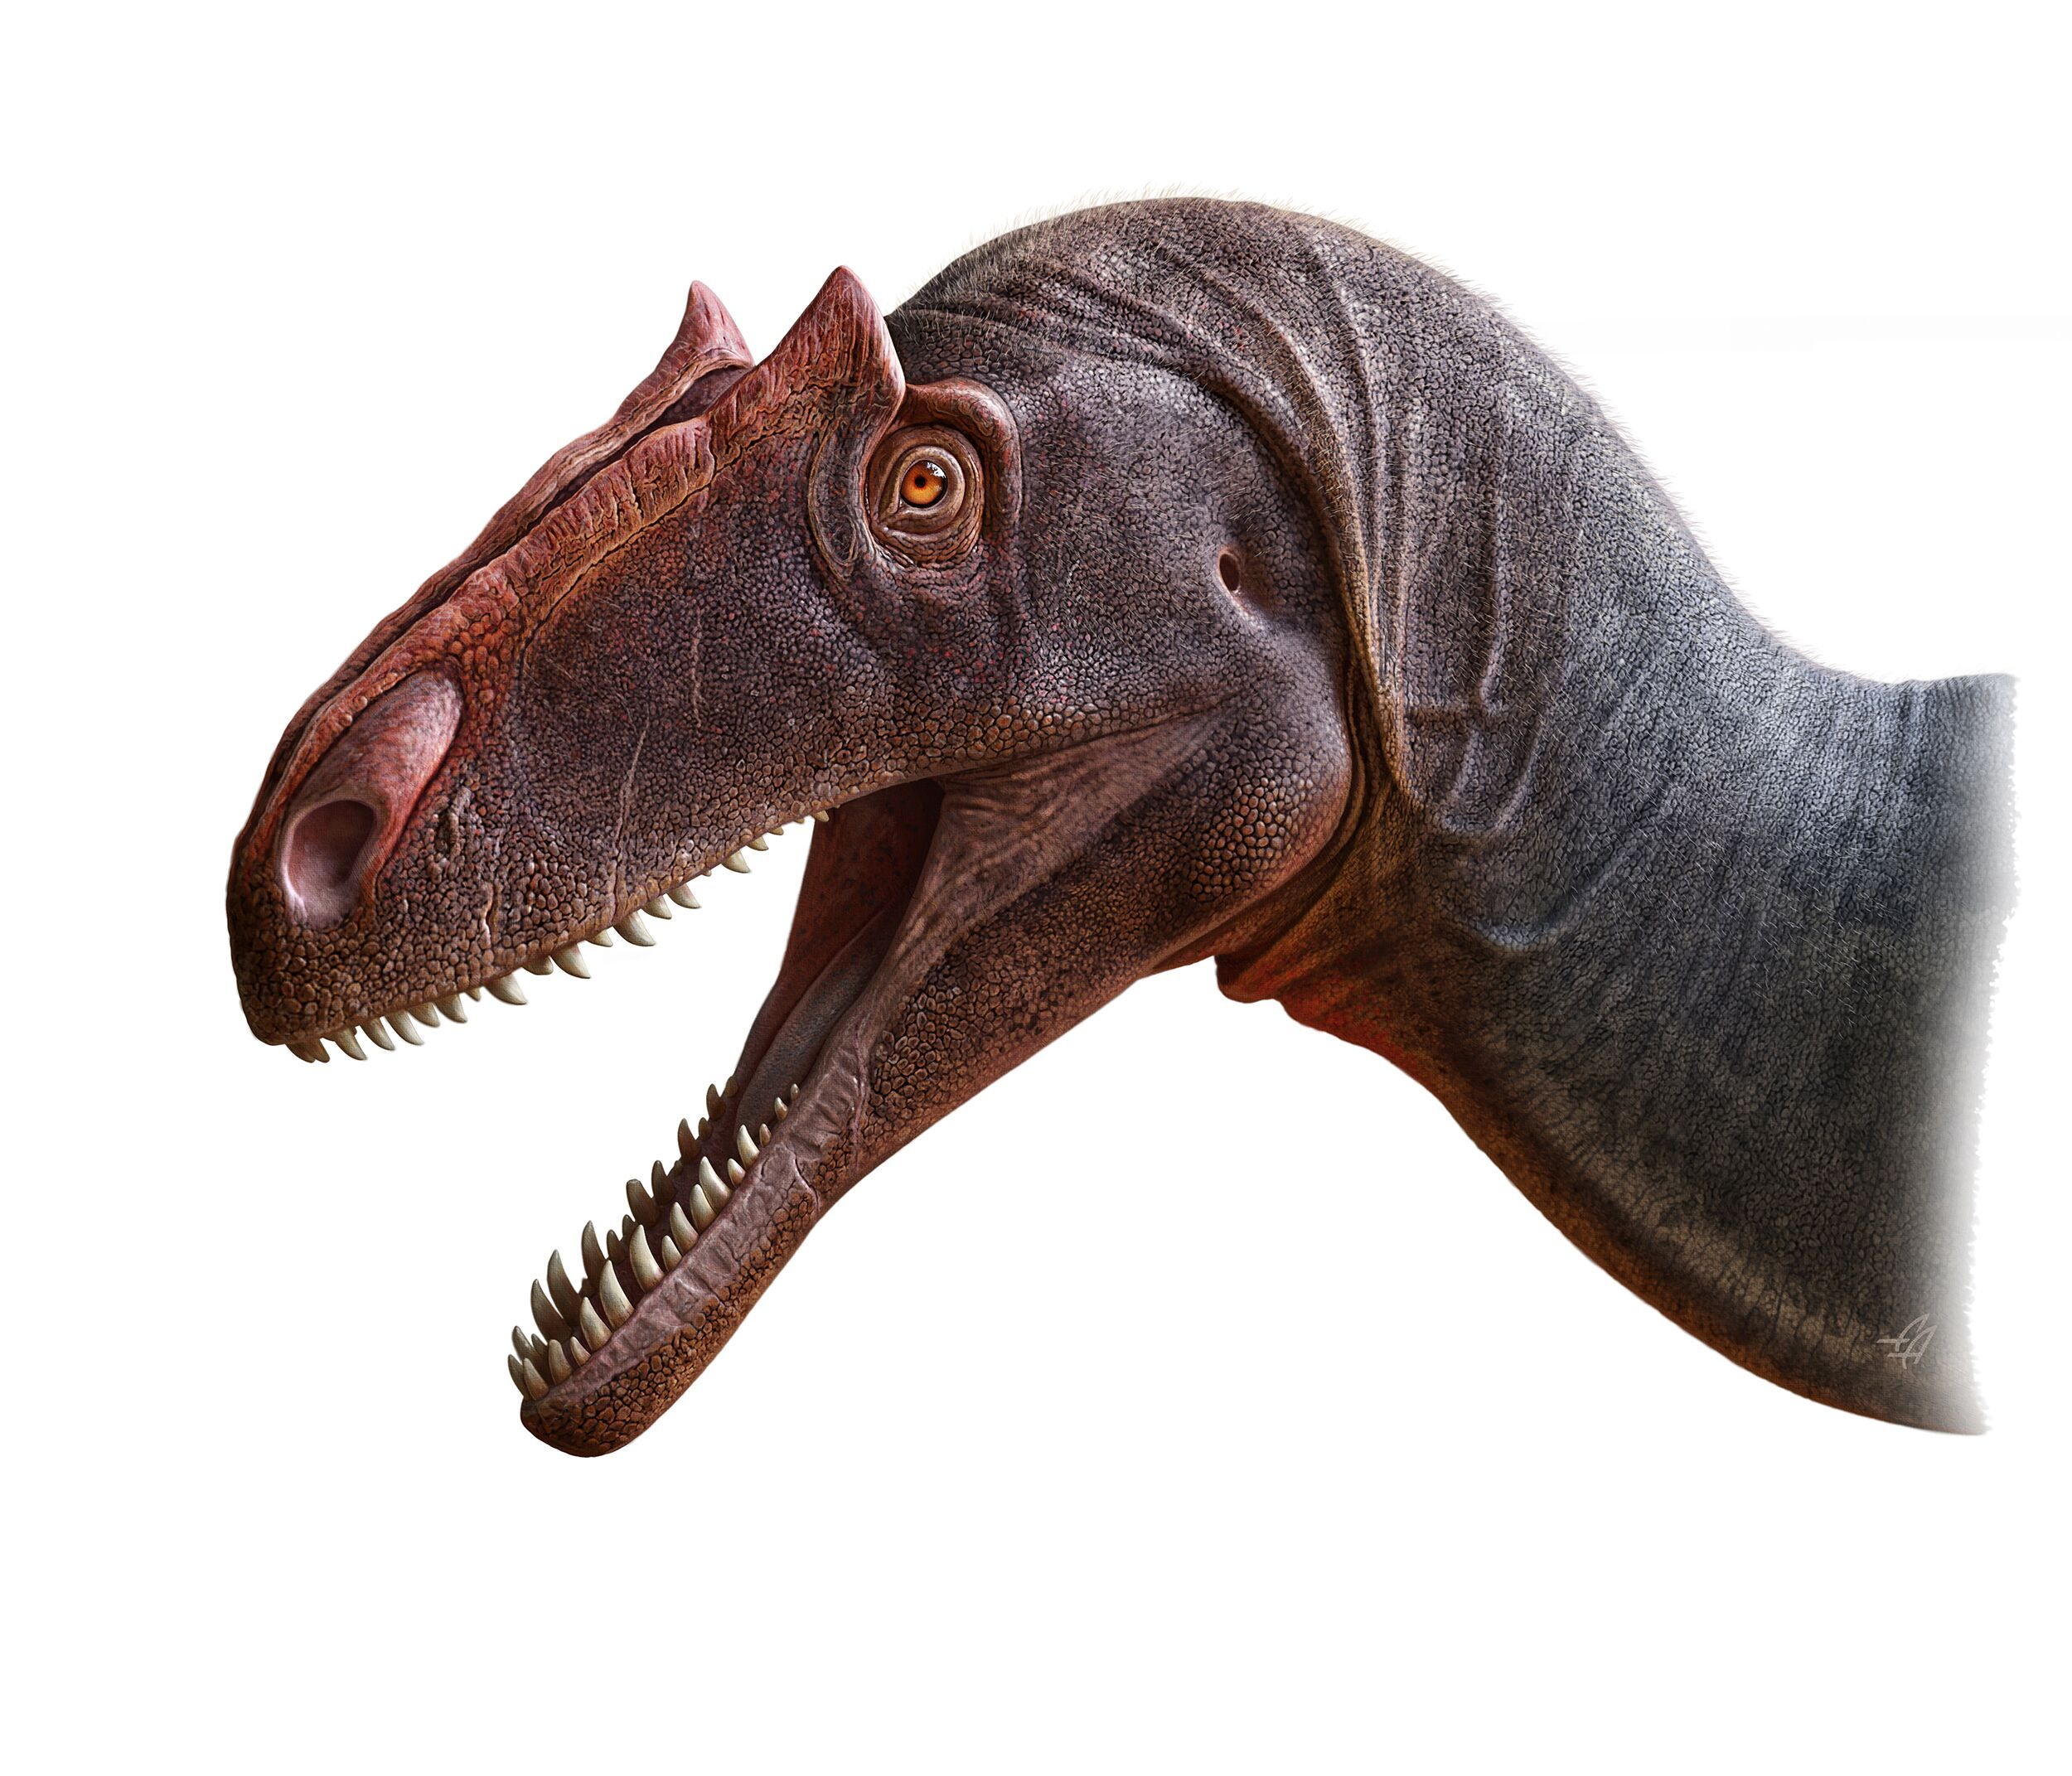 New Dinosaur Alert! Just Look at This Marvelous Meat-Eating Allosaurus